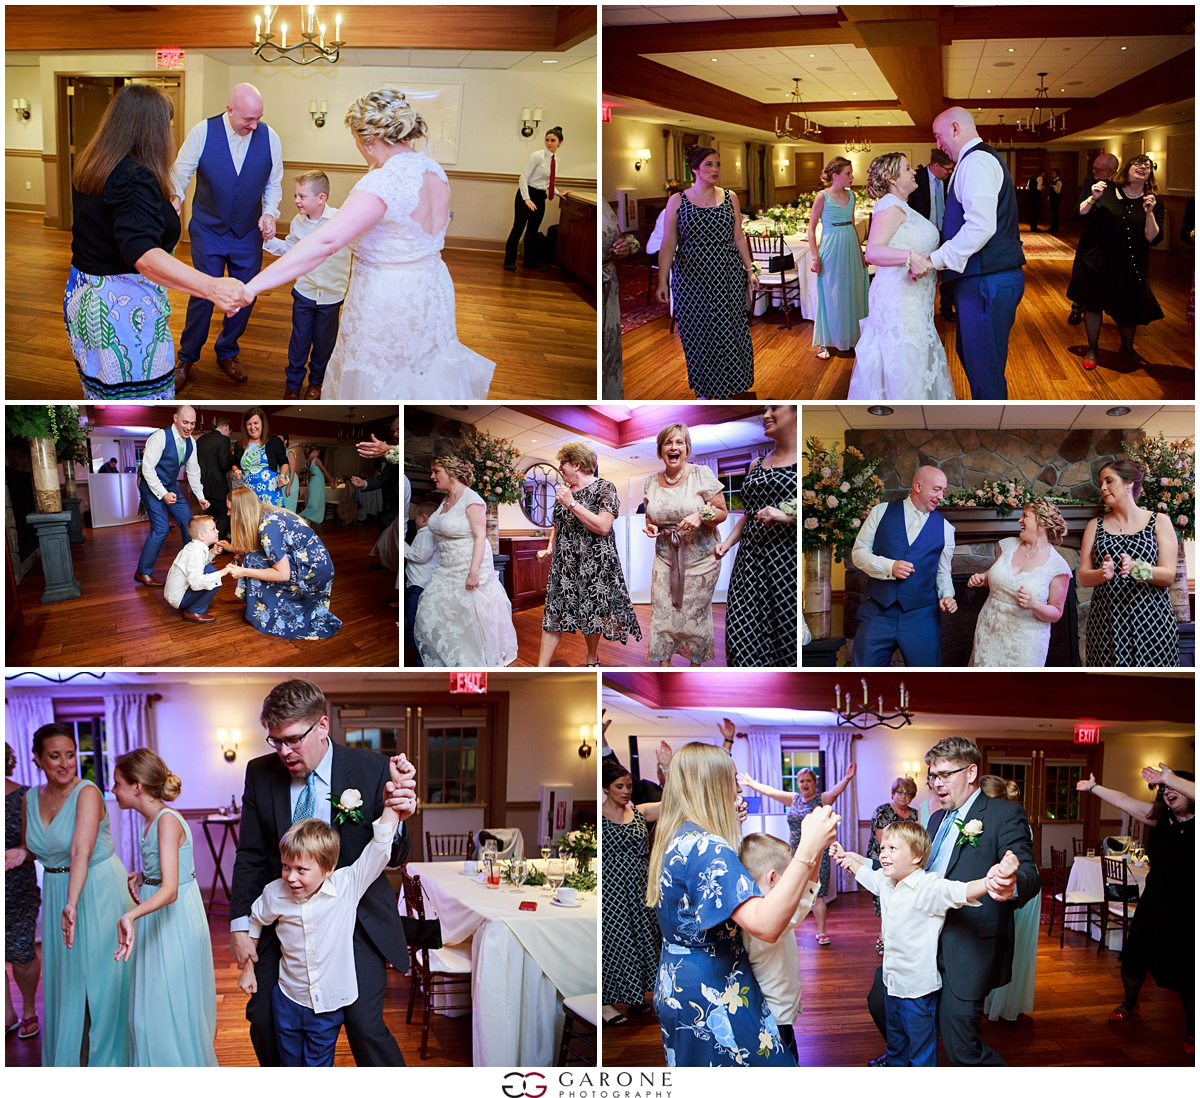 Melissa_Andy_The_Grand_Bedford_Village_Inn_Nh_Wedding_Photography_0033.jpg